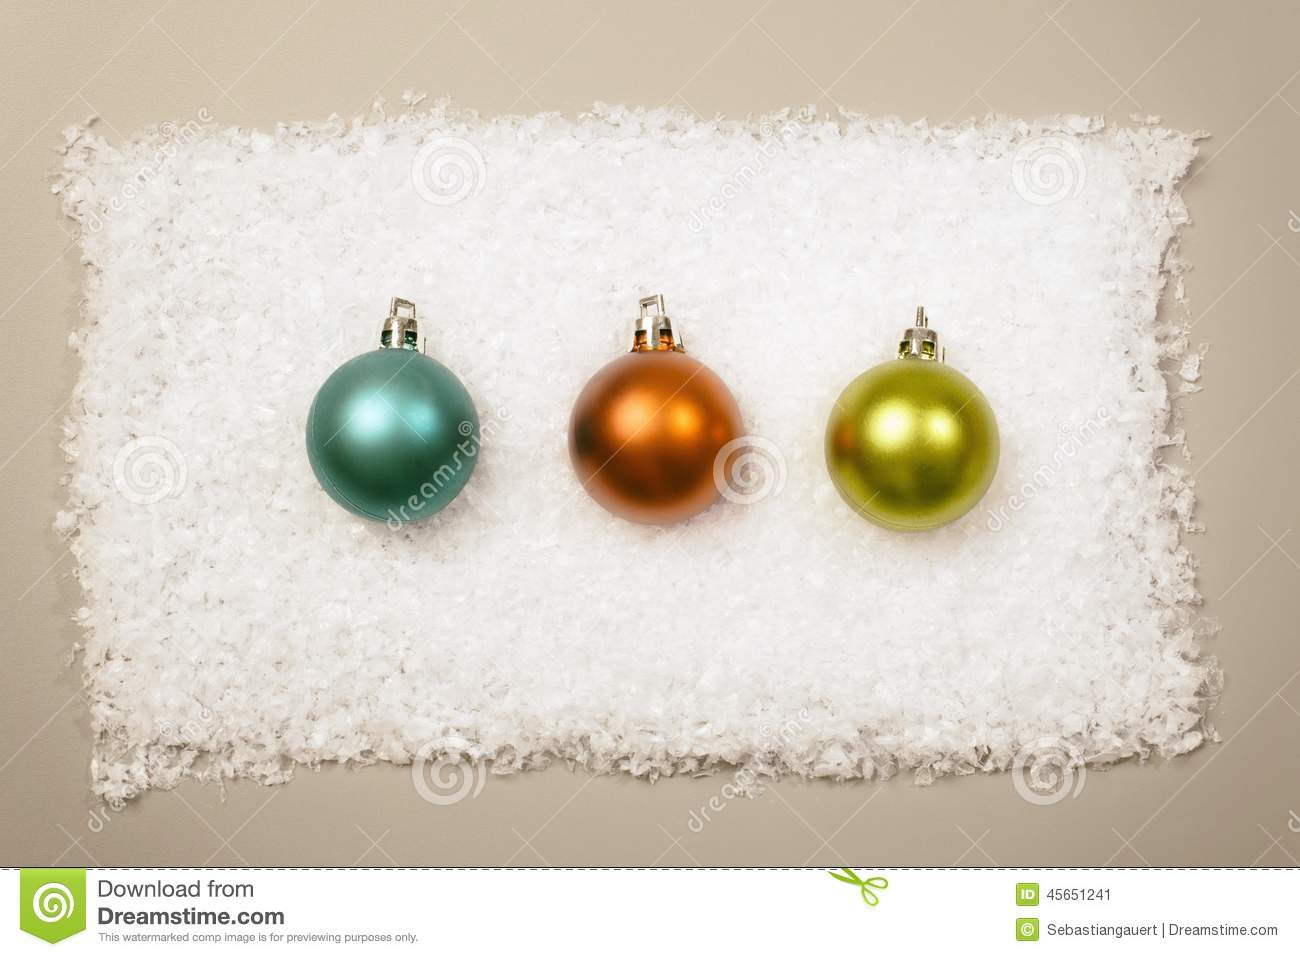 3 Christmas Balls In Row On Snow Background Stock Image - Image of ...